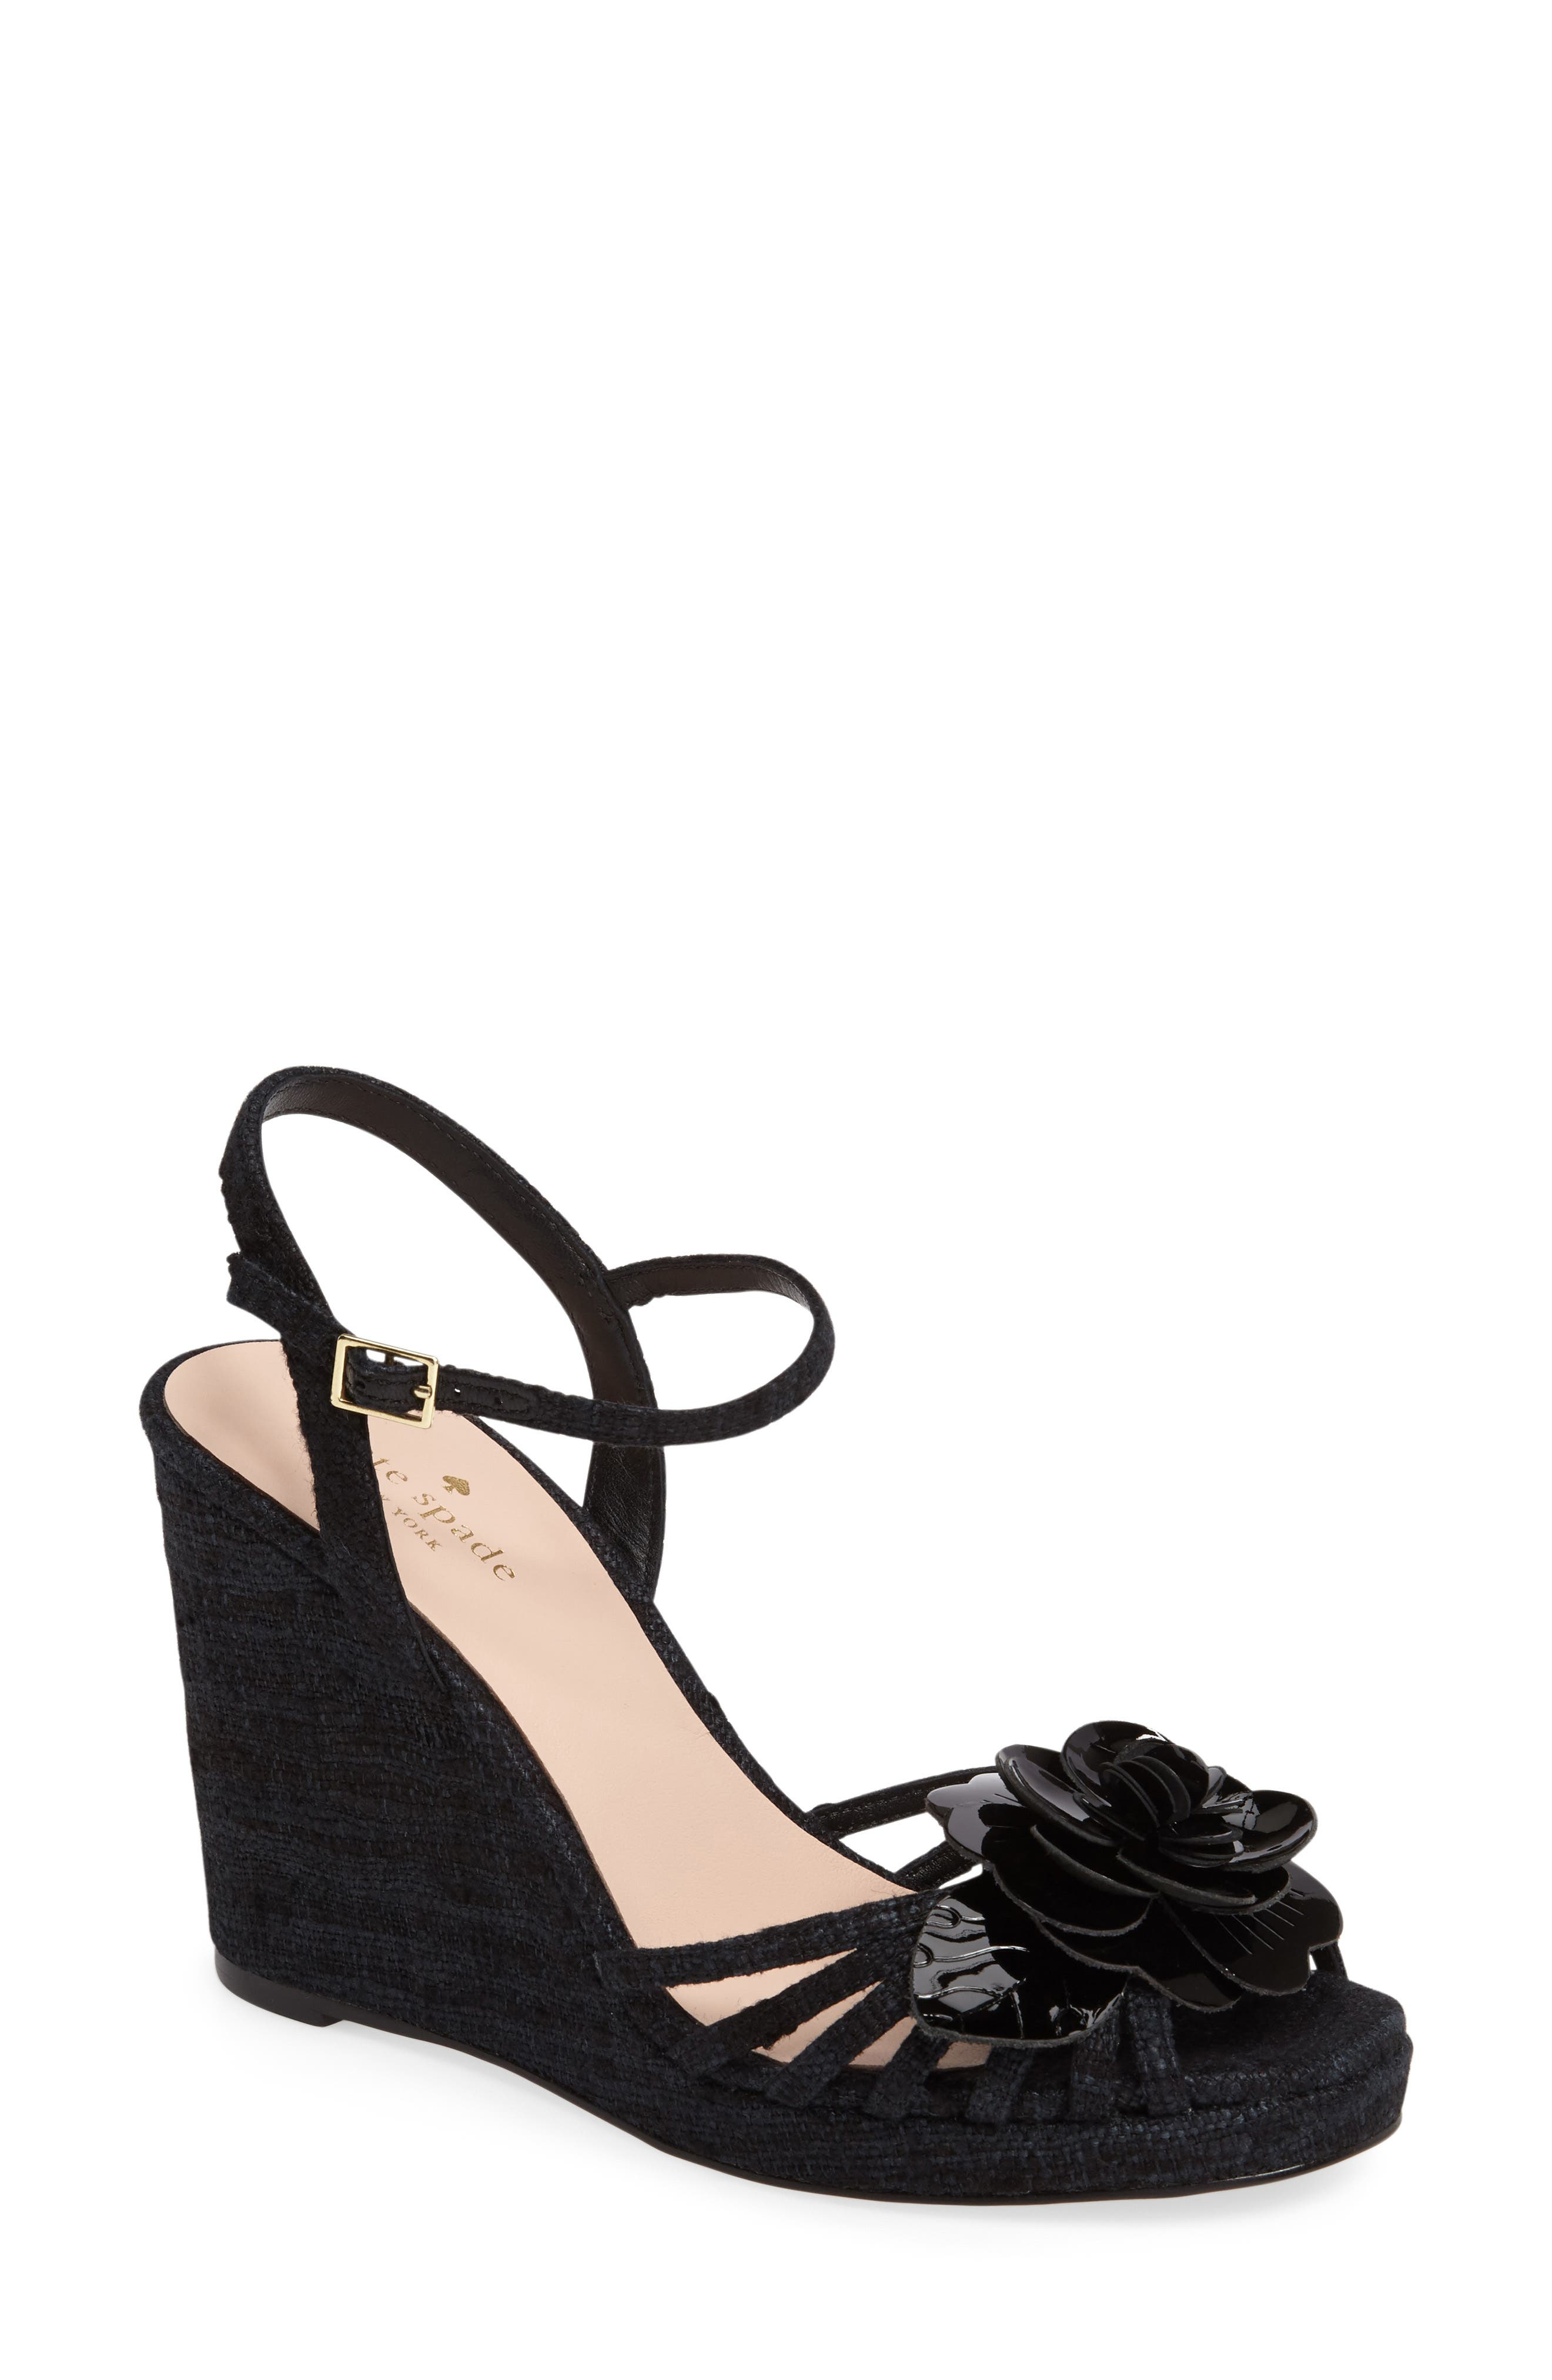 beekman strappy wedge sandal,                         Main,                         color, 001